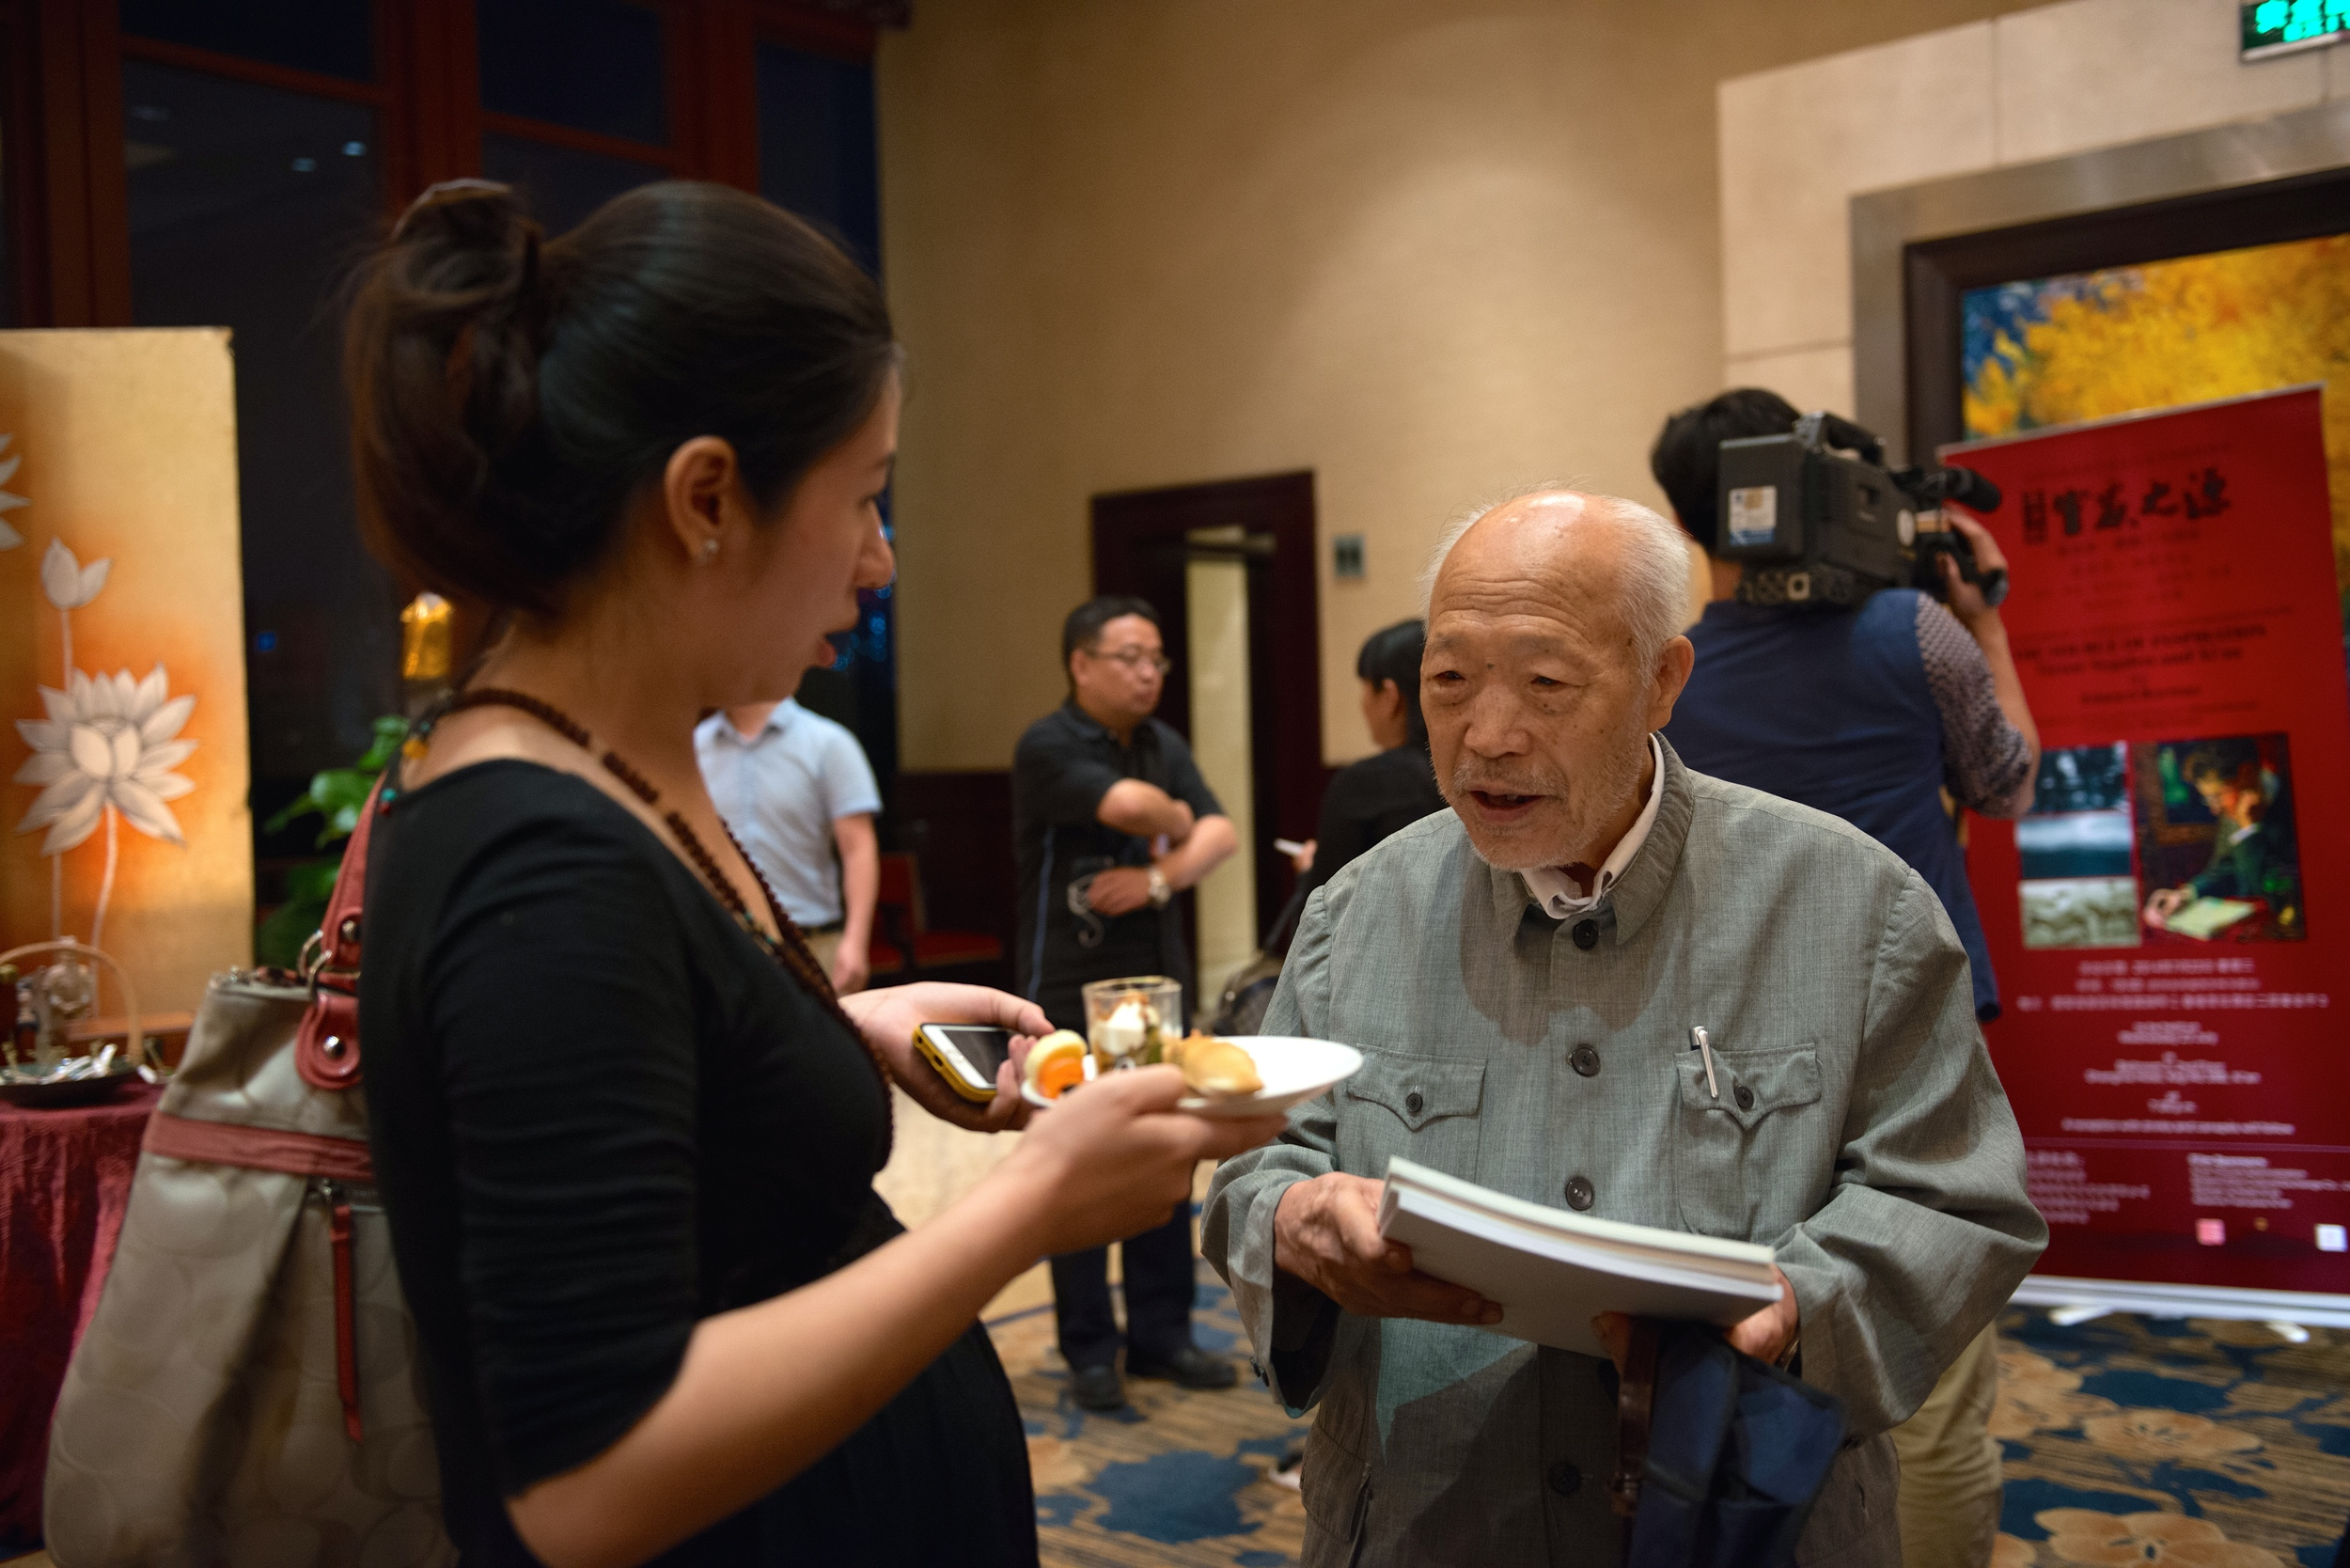 Professor Shih Xing Bang, past President, now Honorary President, of the Shaanxi Archeological Institute, at the reception following the first showing of THE SOURCE OF INSPIRATION. He was interviewed in the film.